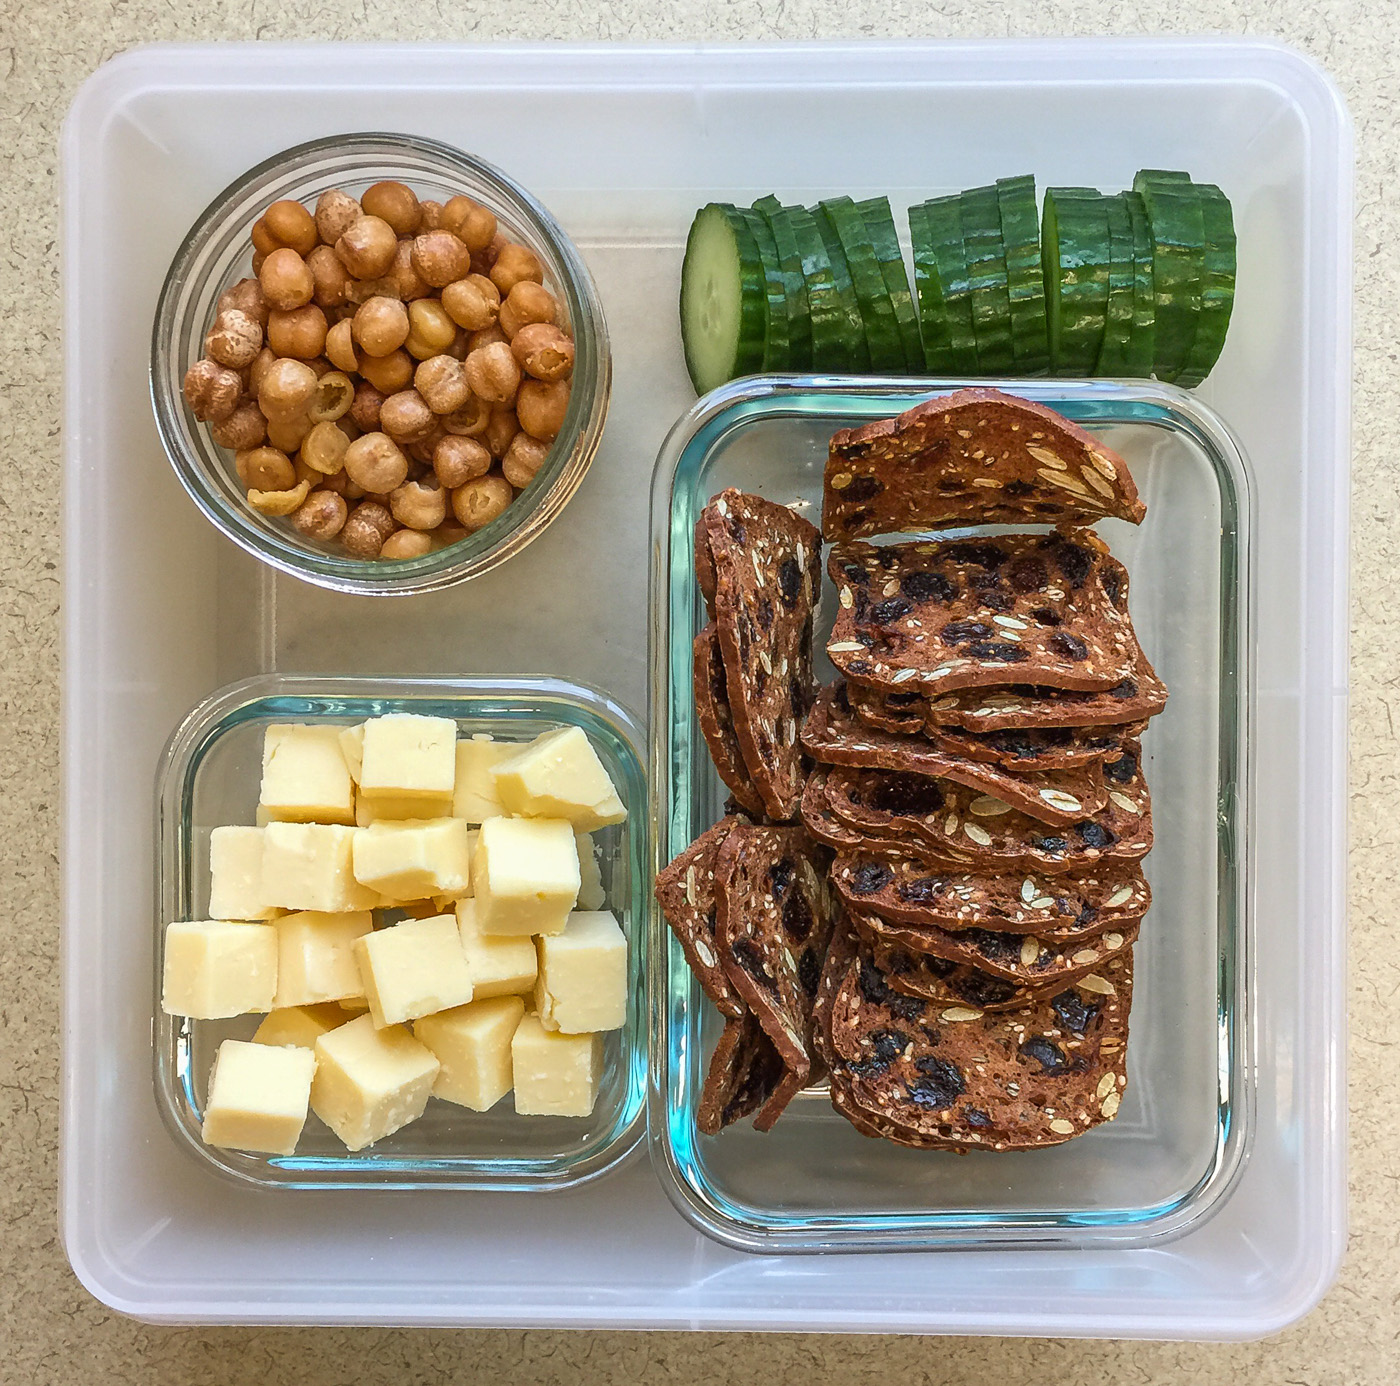 Healthy snacks at work cheddar, chickpeas, cucumber, crackers